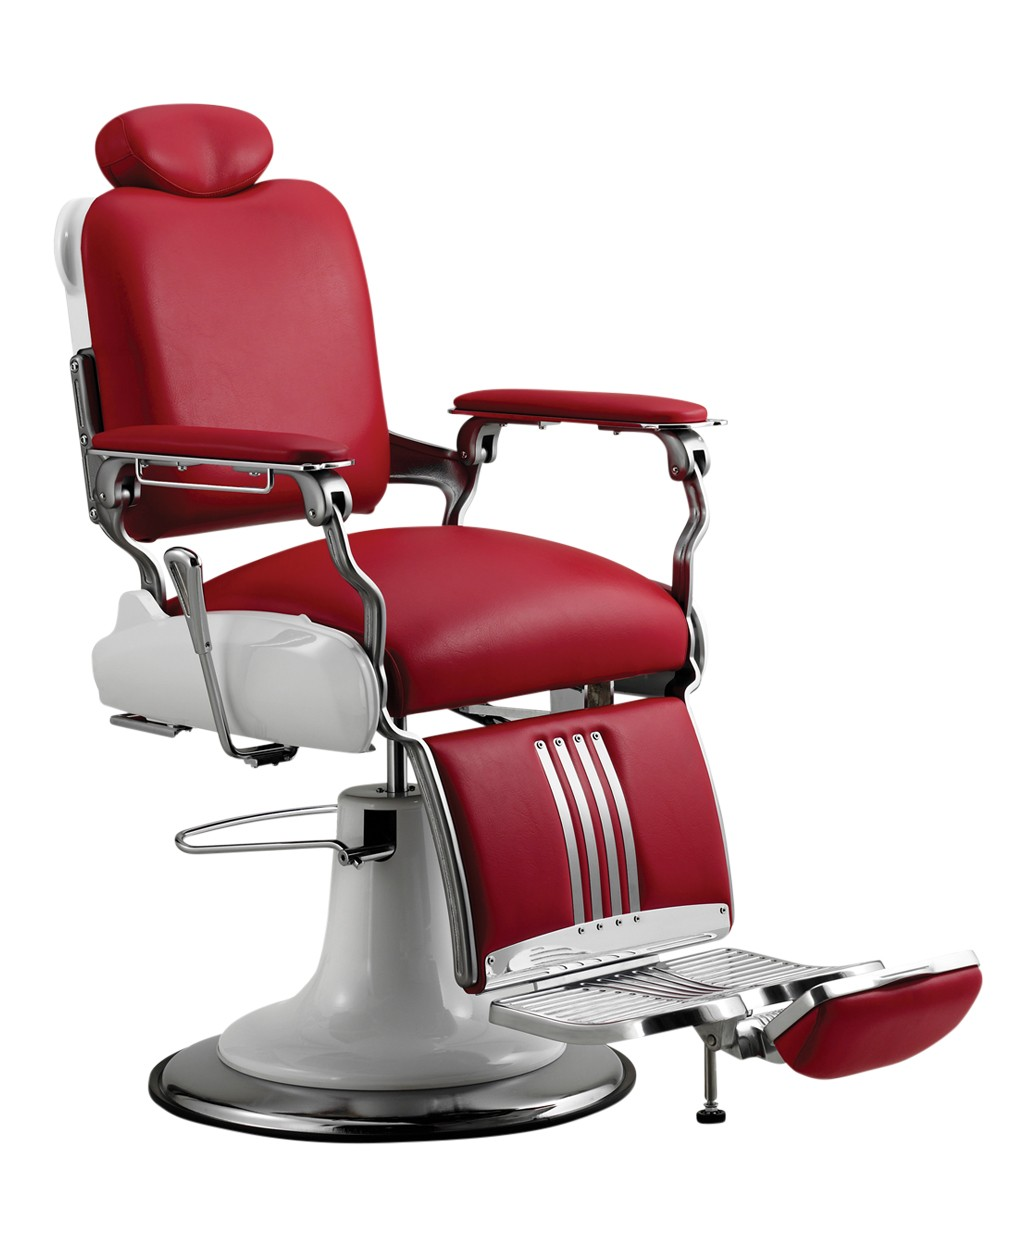 Koken Barber Chairs Takara Belmont Bb 0090 Koken Legacy Barber Chair